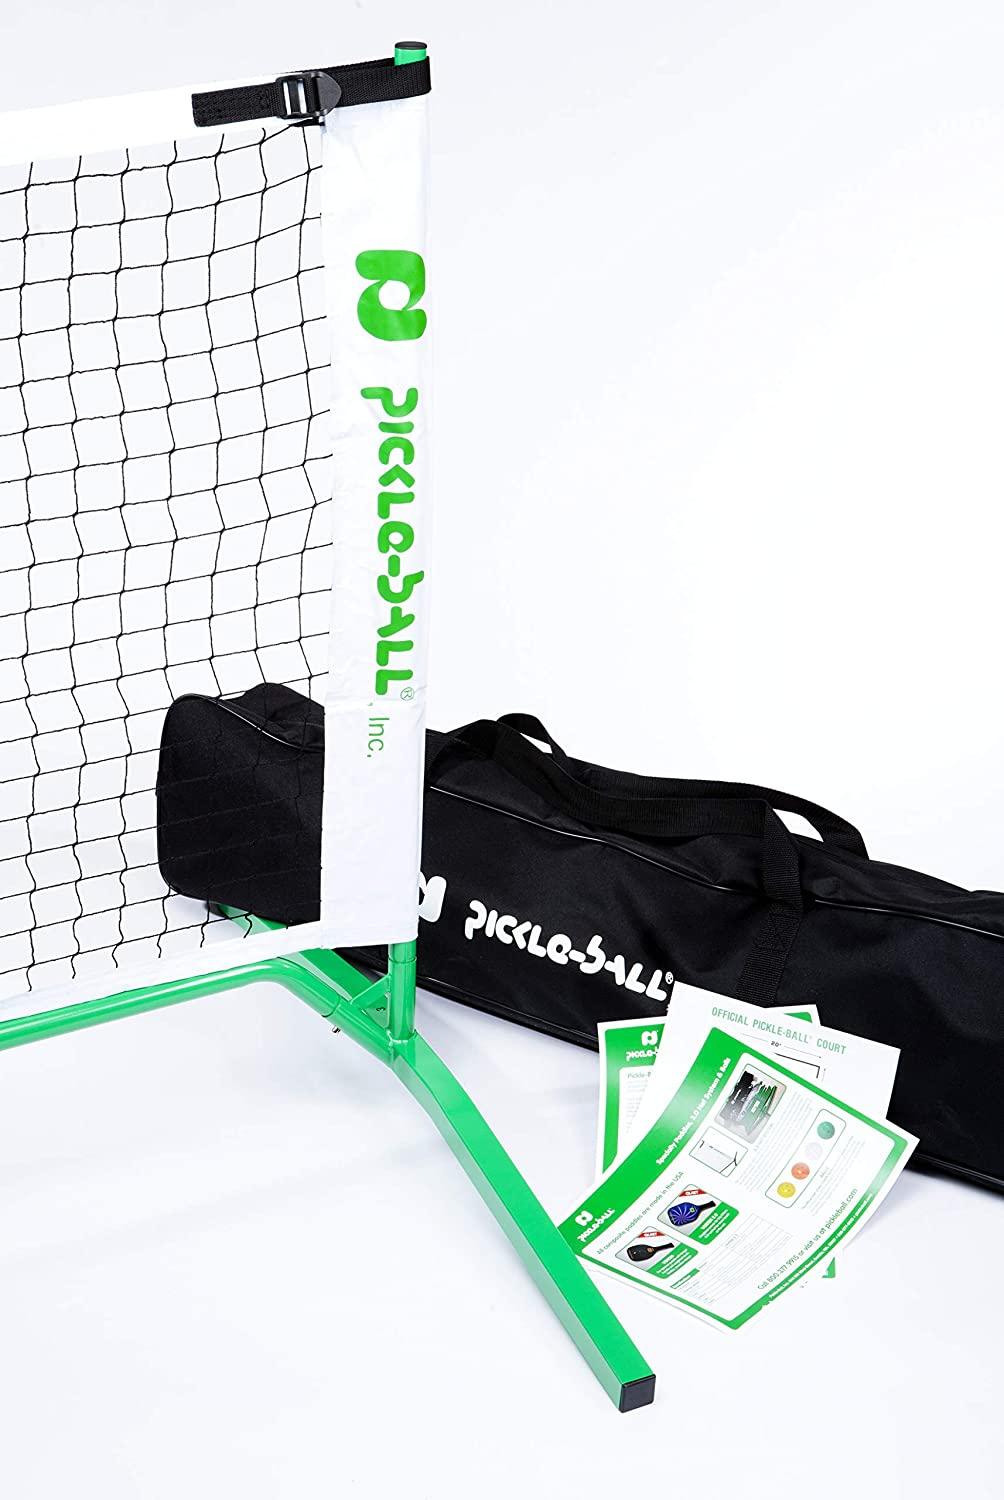 3 0 Portable Pickleball Net System Set Includes Metal Frame And Net In Carry Bag Durable And Easy To Assemble Sporting Goods Sports Outdoors